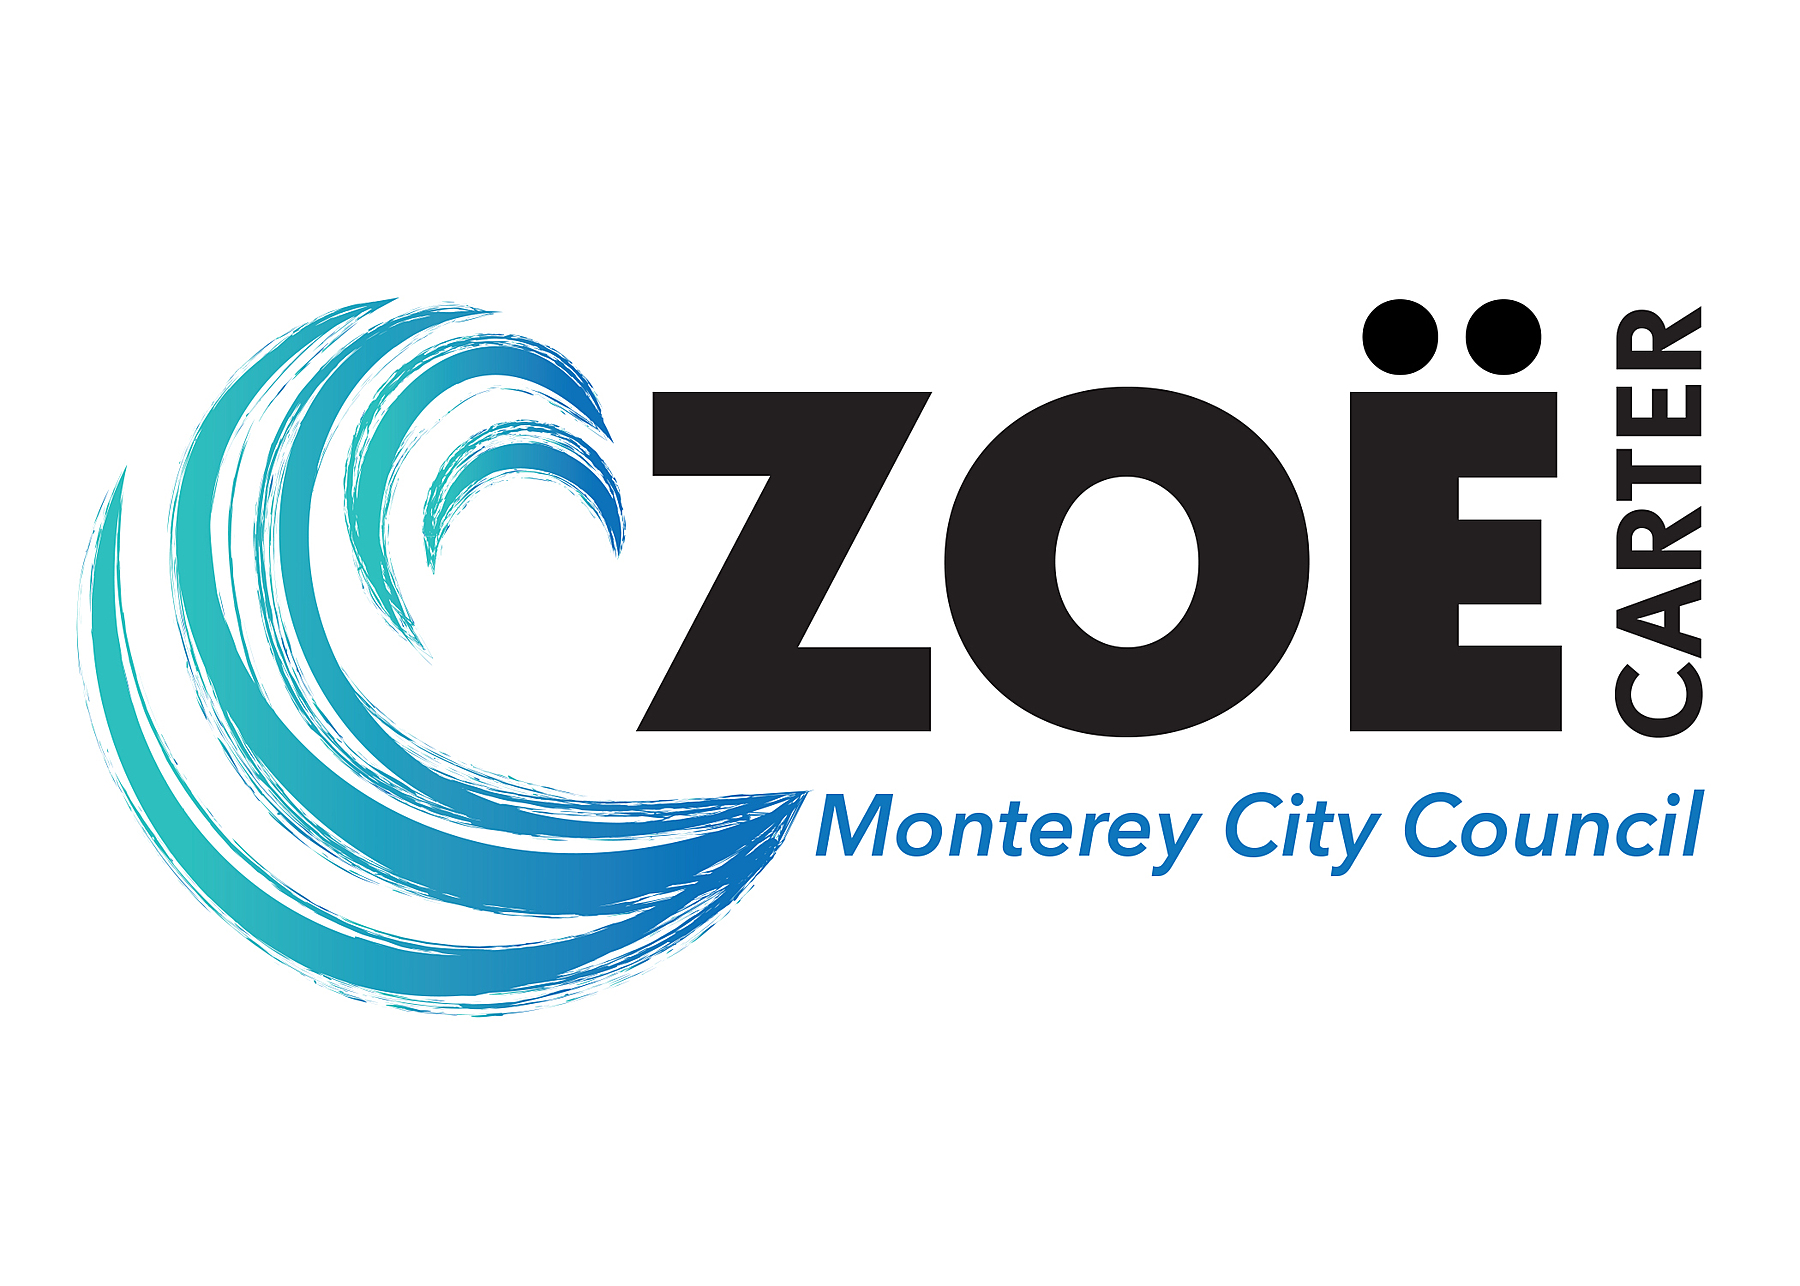 Zoe Carter for Monterey City Council: General Fund